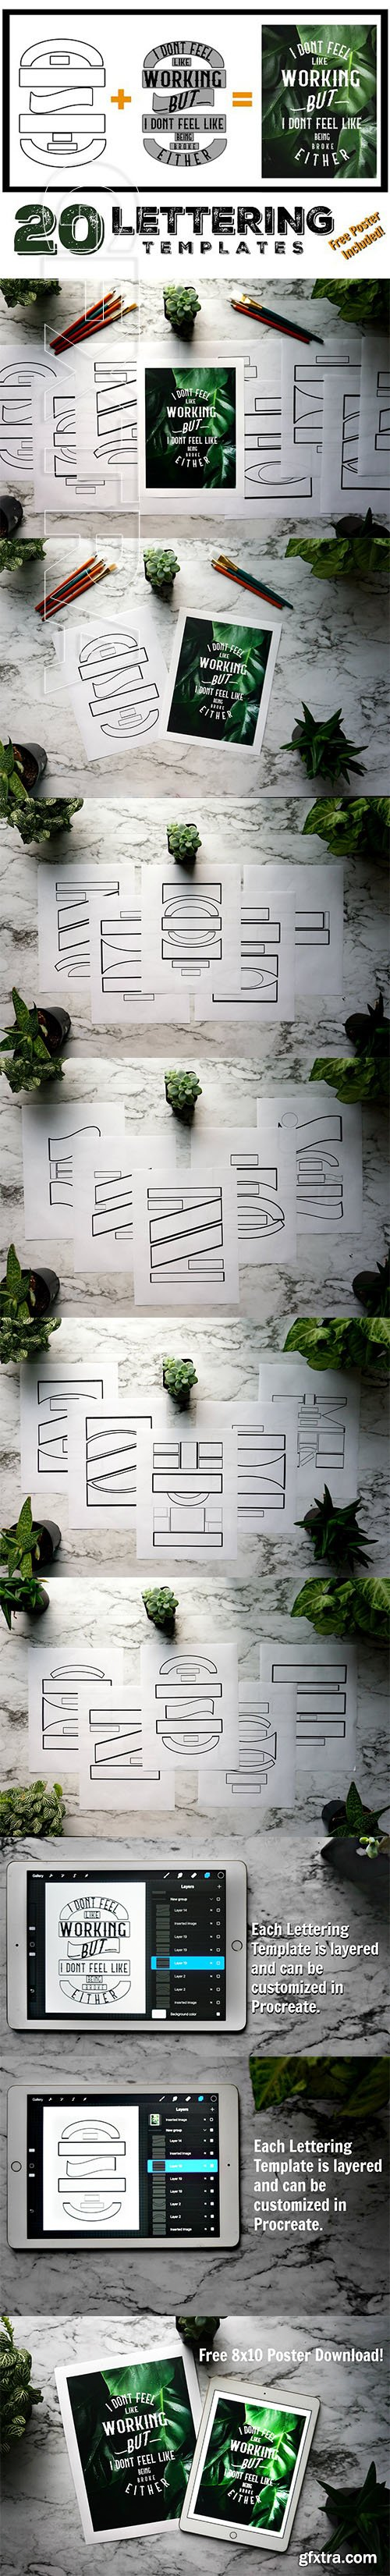 CreativeMarket - Lettering Composition Templates 2554333